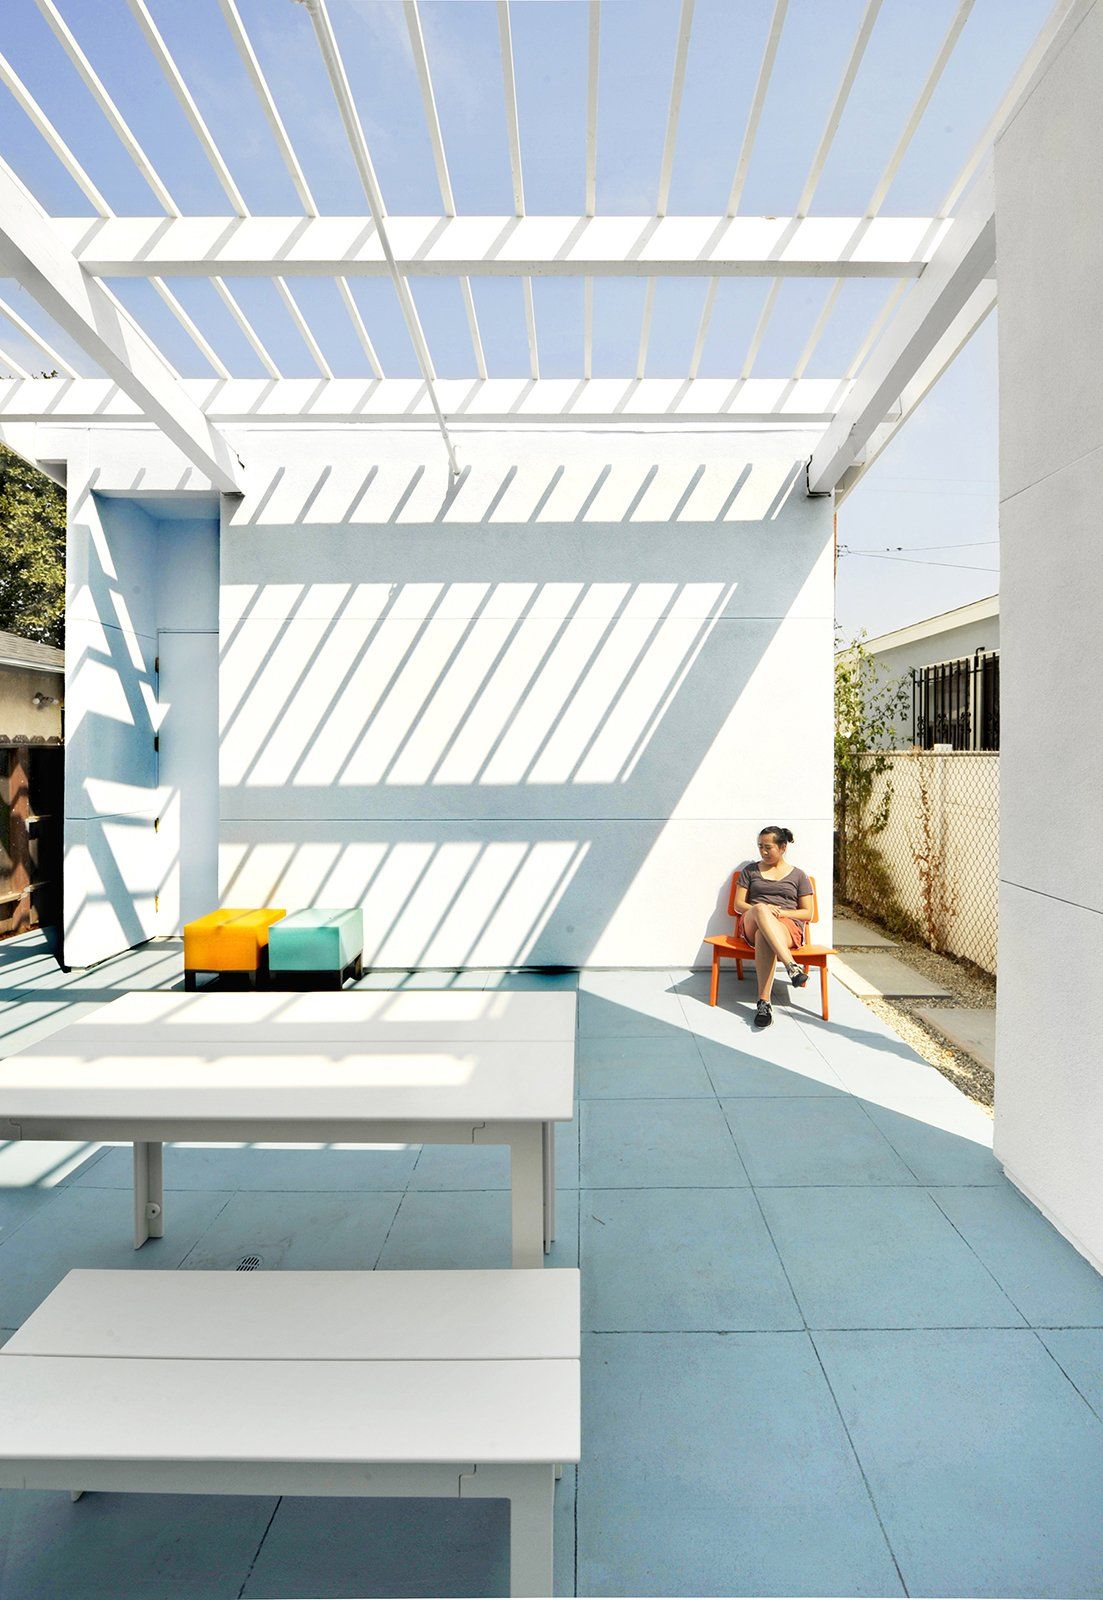 """""""Color simply and cost-effectively enriched and made the architectural idea palpable and pleasurable,"""" Lehrer says about the prismatic theme. """"It was used to explicitly articulate and dramatically enhance the circulation and spatial concepts. It helps make modest, but wonderful, spaces a little magical.""""  Photo 8 of 11 in Vibrant Affordable Housing Prototypes in Los Angeles"""